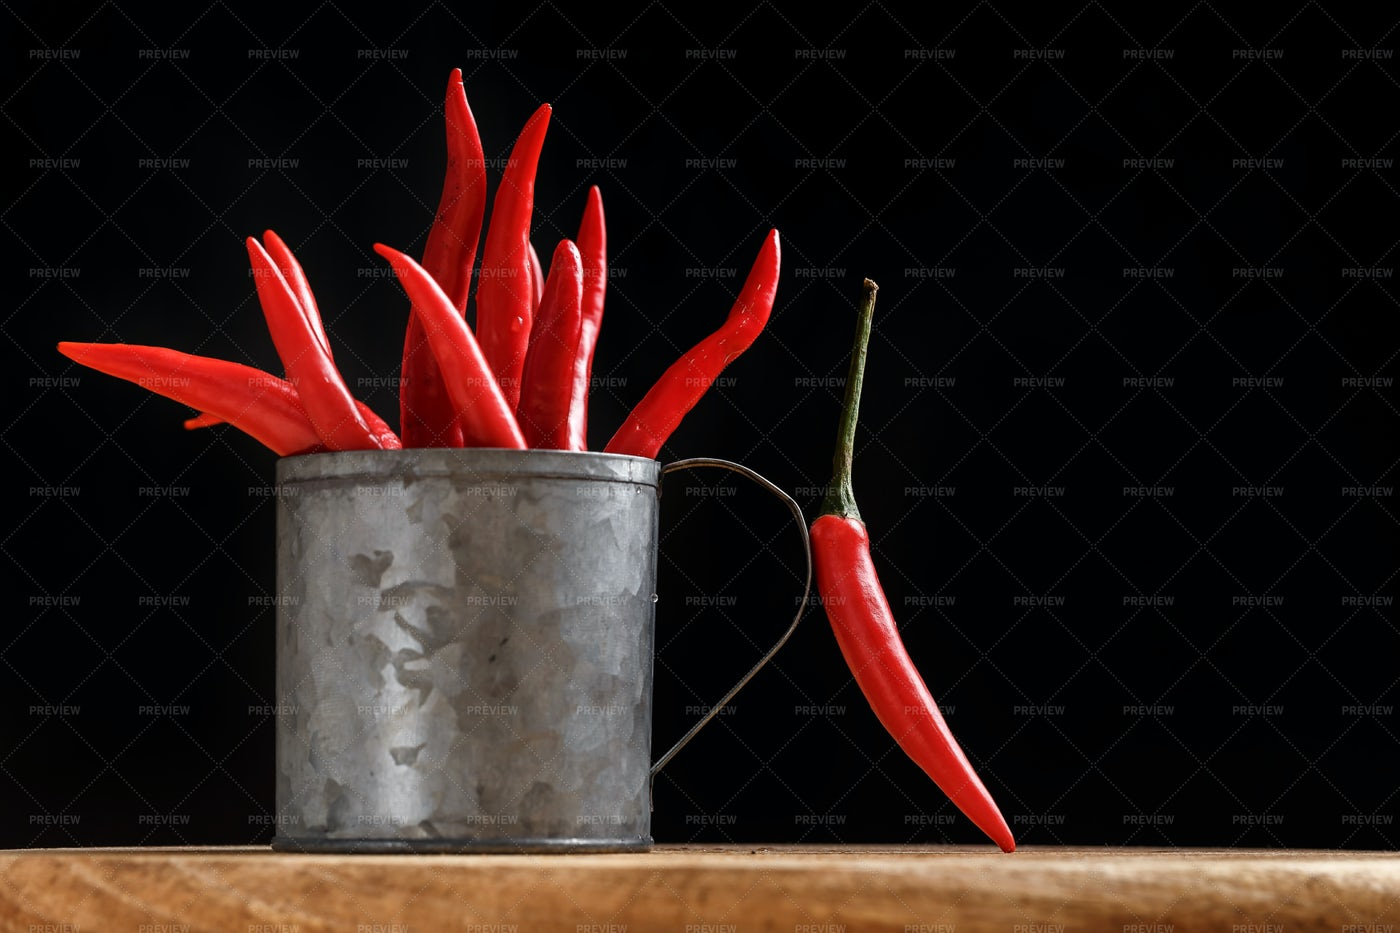 Hot Peppers In Can: Stock Photos